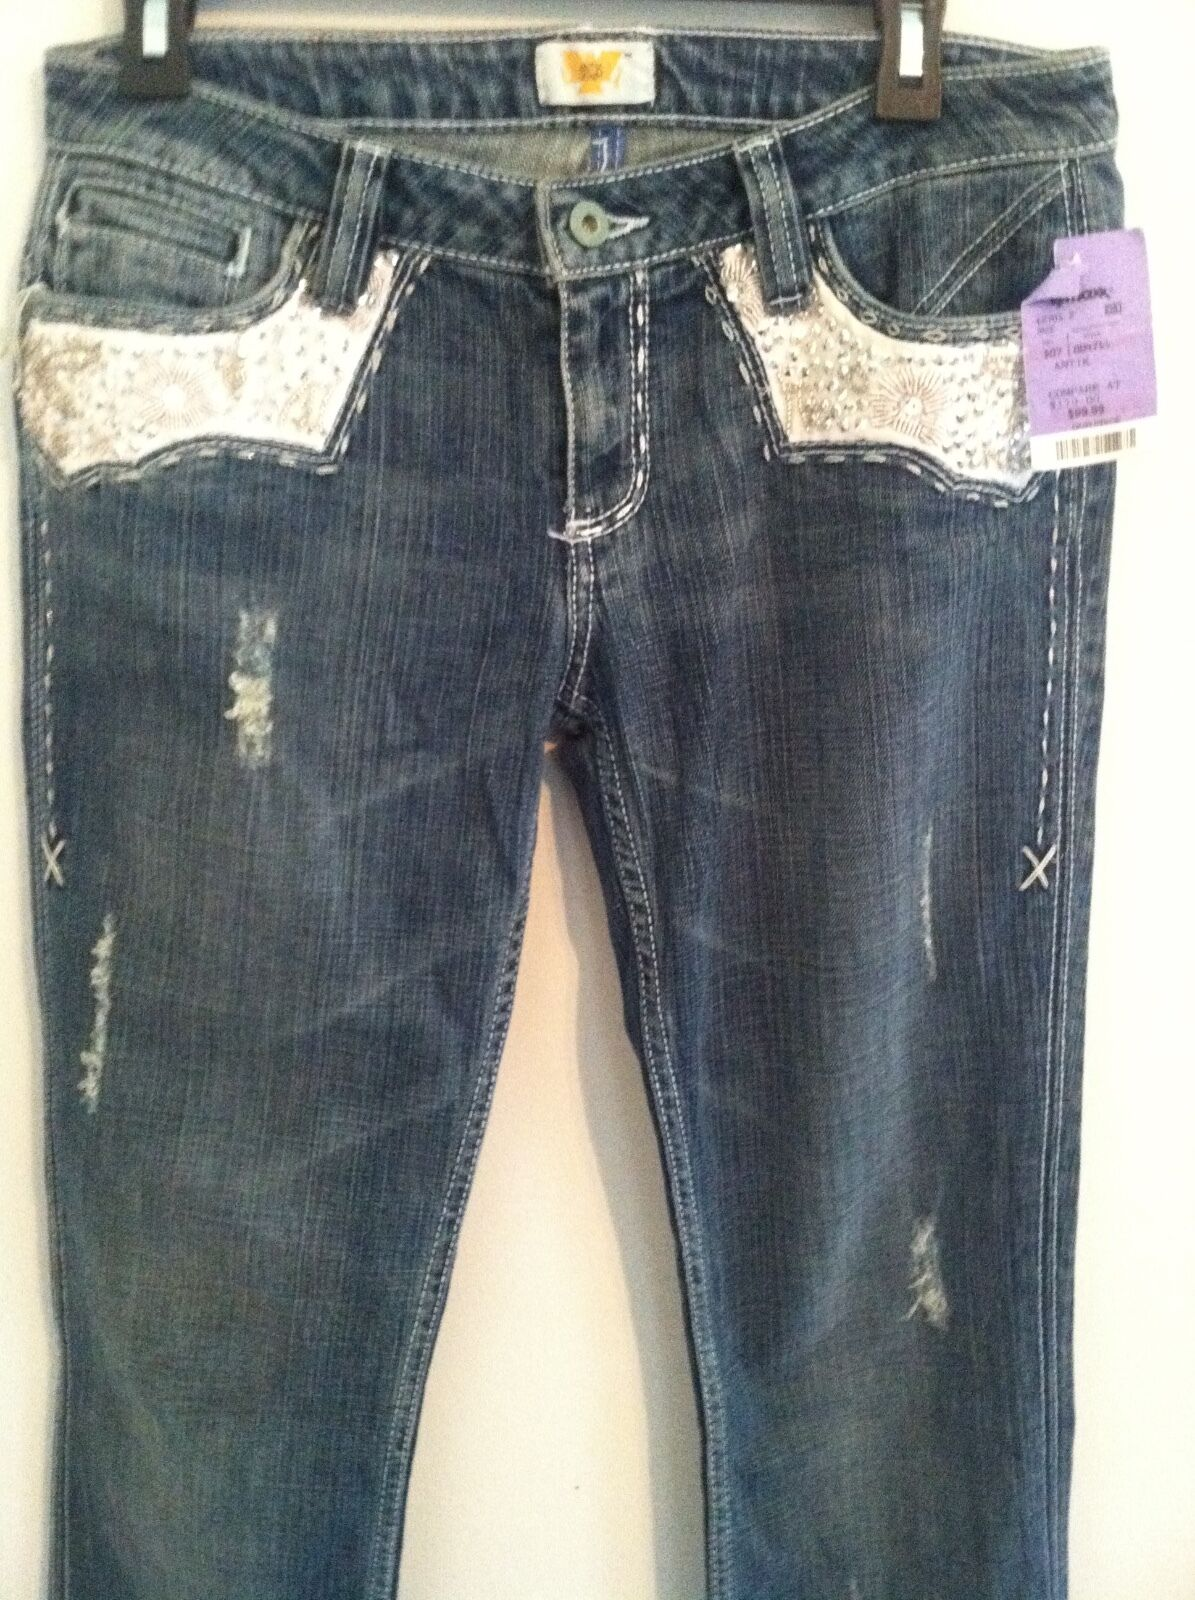 Brand New with Tag women's size 29 Antik Denim embellished bluee distressed jeans